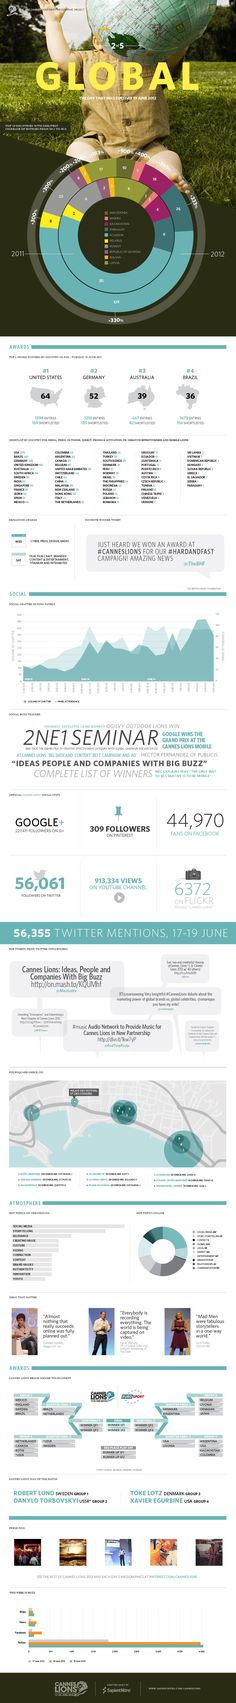 Cannes_Lions_2012_Infographic_2_small